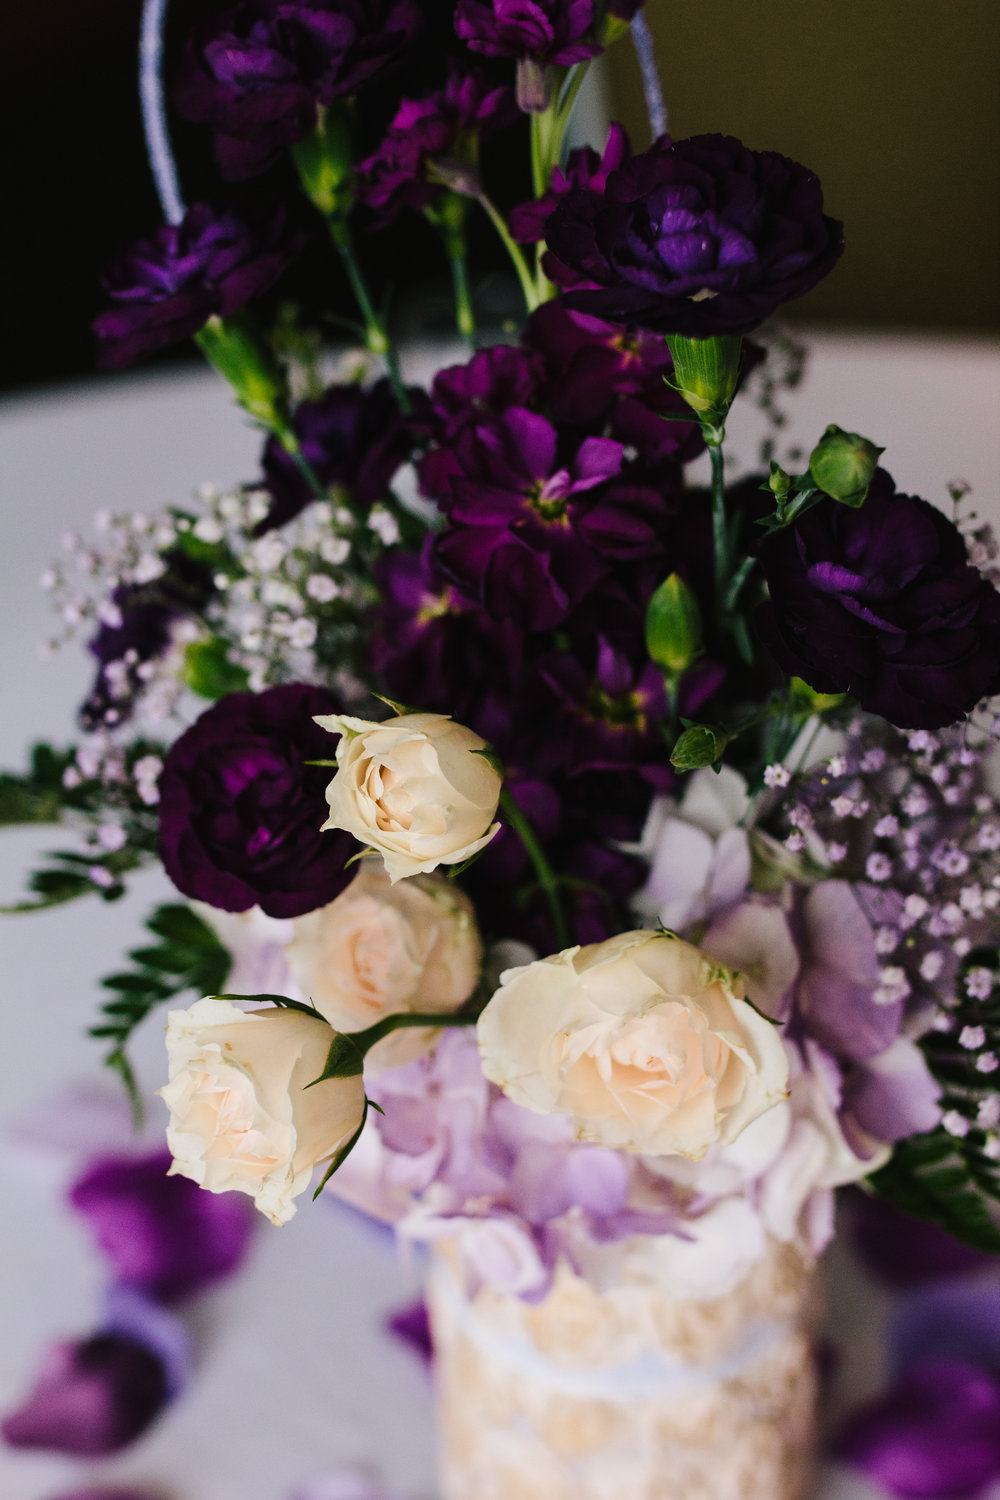 Simple Purple + White Wedding Centerpieces - A Simple Purple + White Wedding by From Britt's Eye View